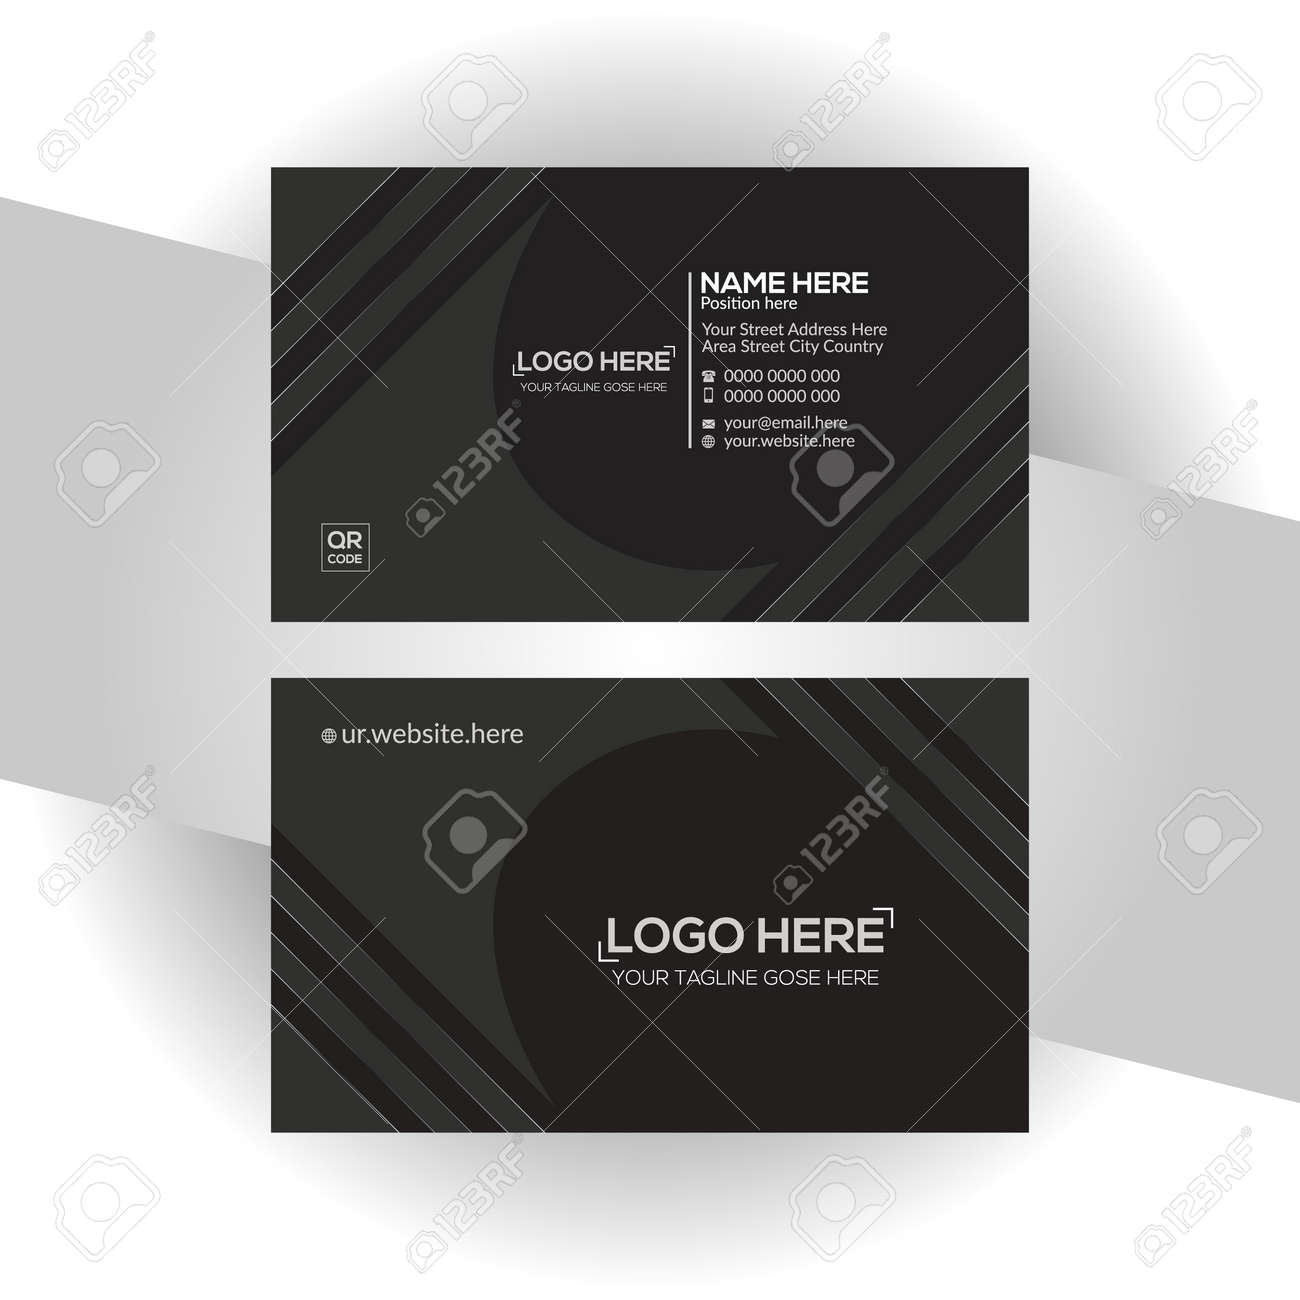 black colored vector business card design for any company use - 171793845